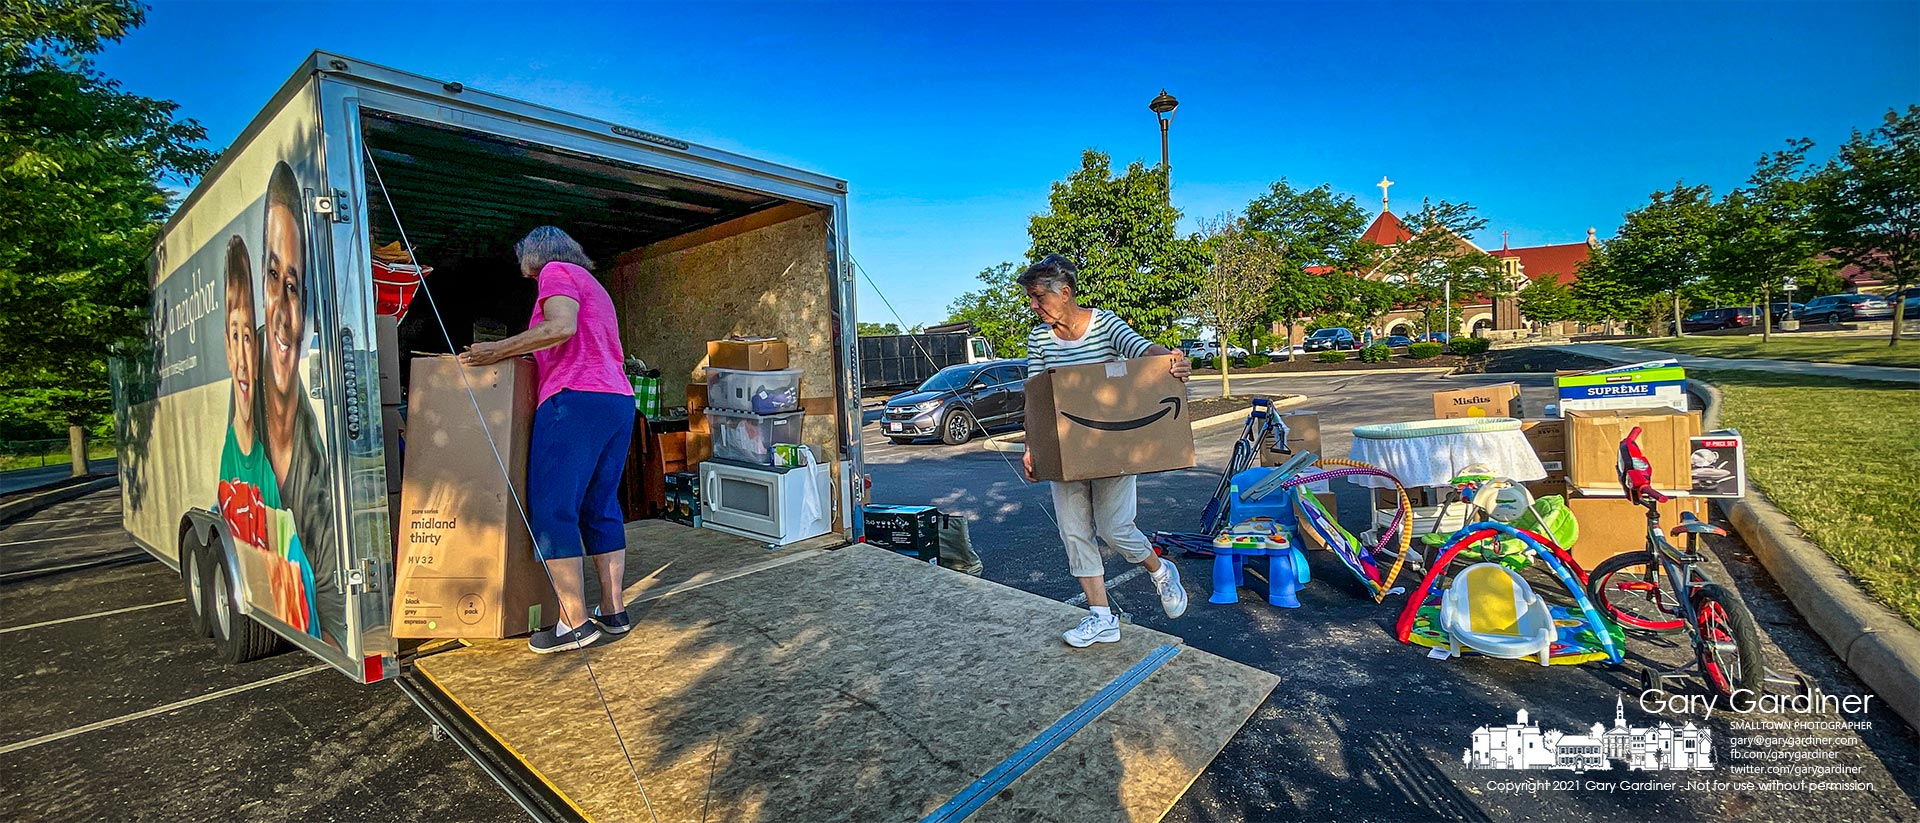 Volunteers sort through the collection of clothing, toys, and household items donated to the St. Vincent DePaul Society during services Sunday at St. Paul the Apostle Catholic Church. My Final Photo for June 27, 2021.